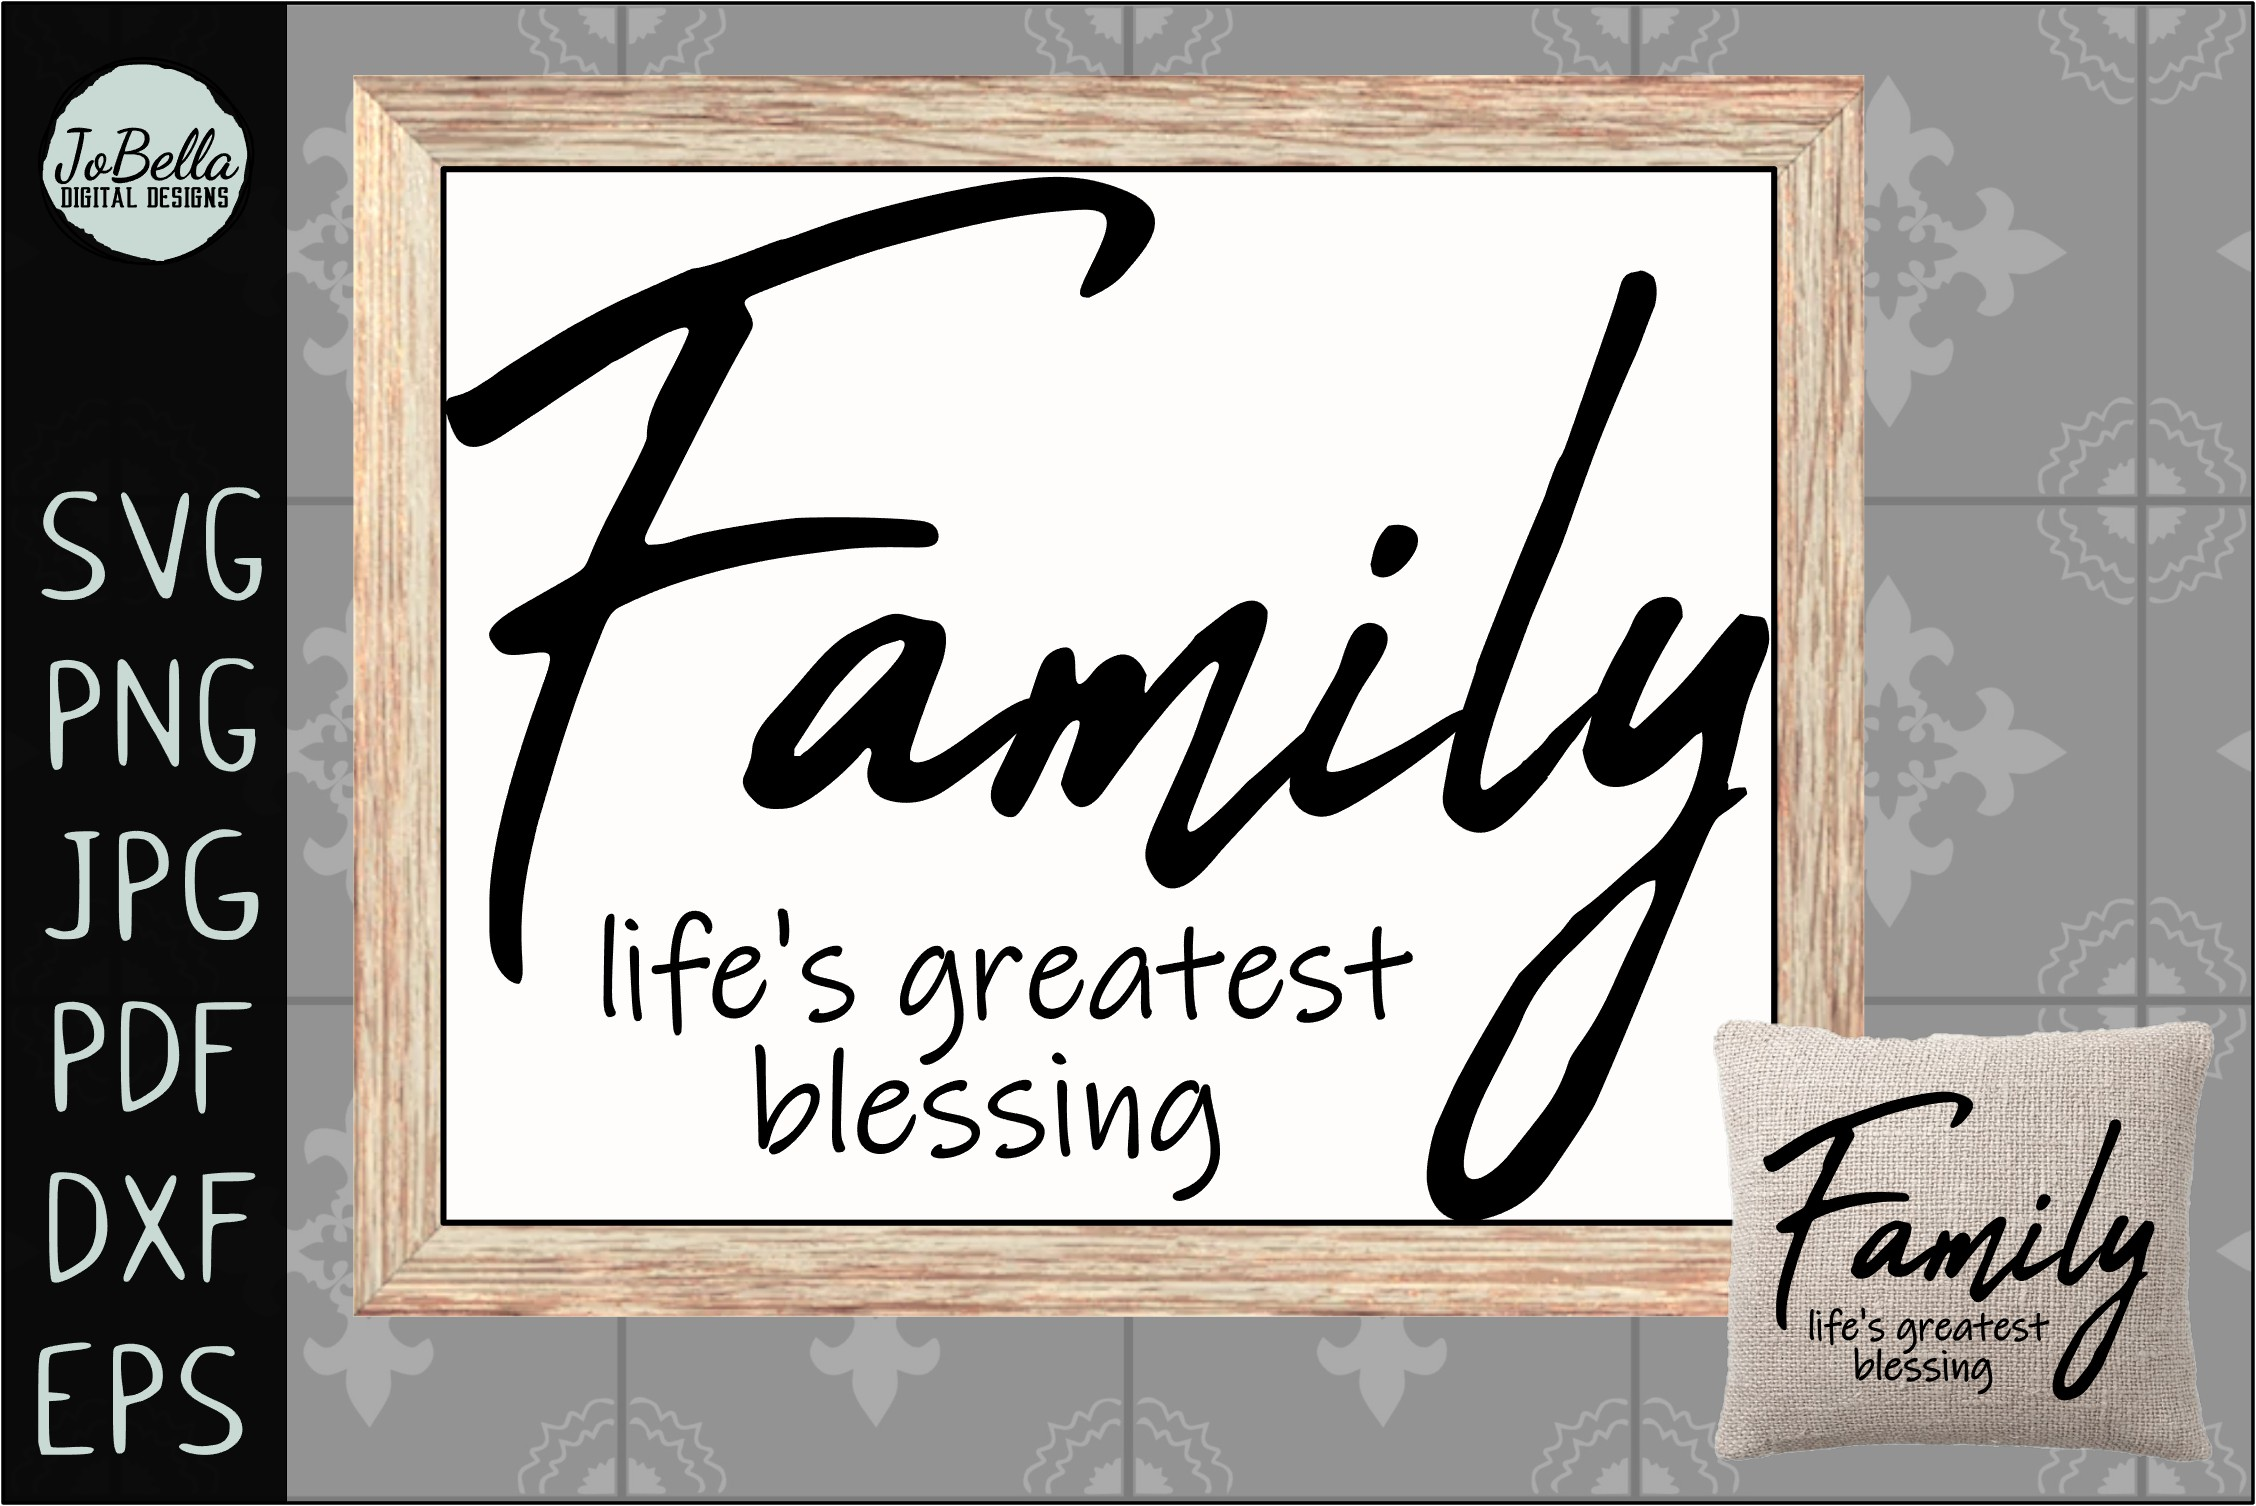 Download Free Family Life S Greatest Blessing Graphic By Jobella Digital for Cricut Explore, Silhouette and other cutting machines.